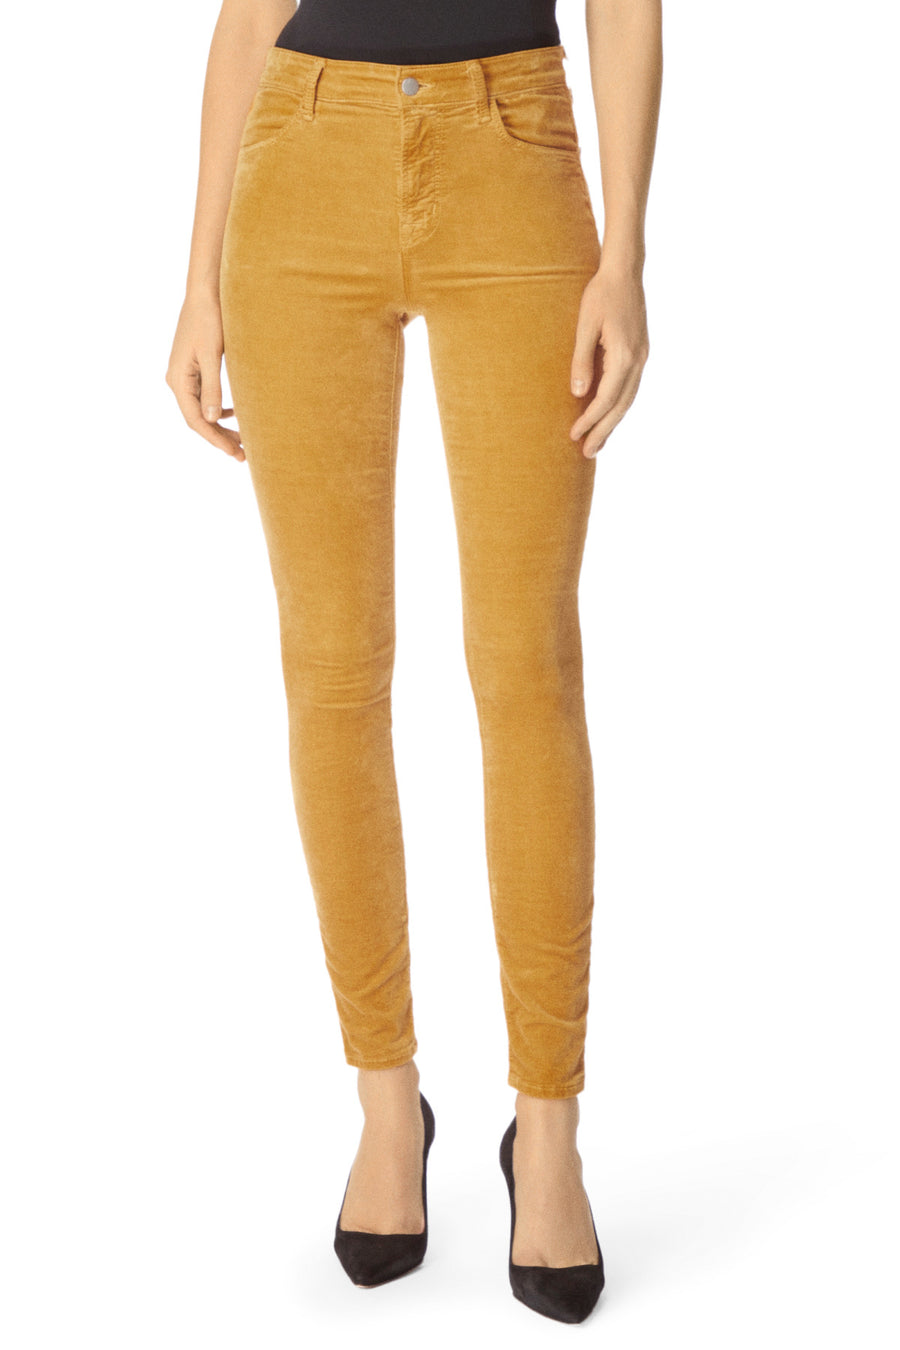 J Brand Maria High Rise Skinny in Iconic Gold